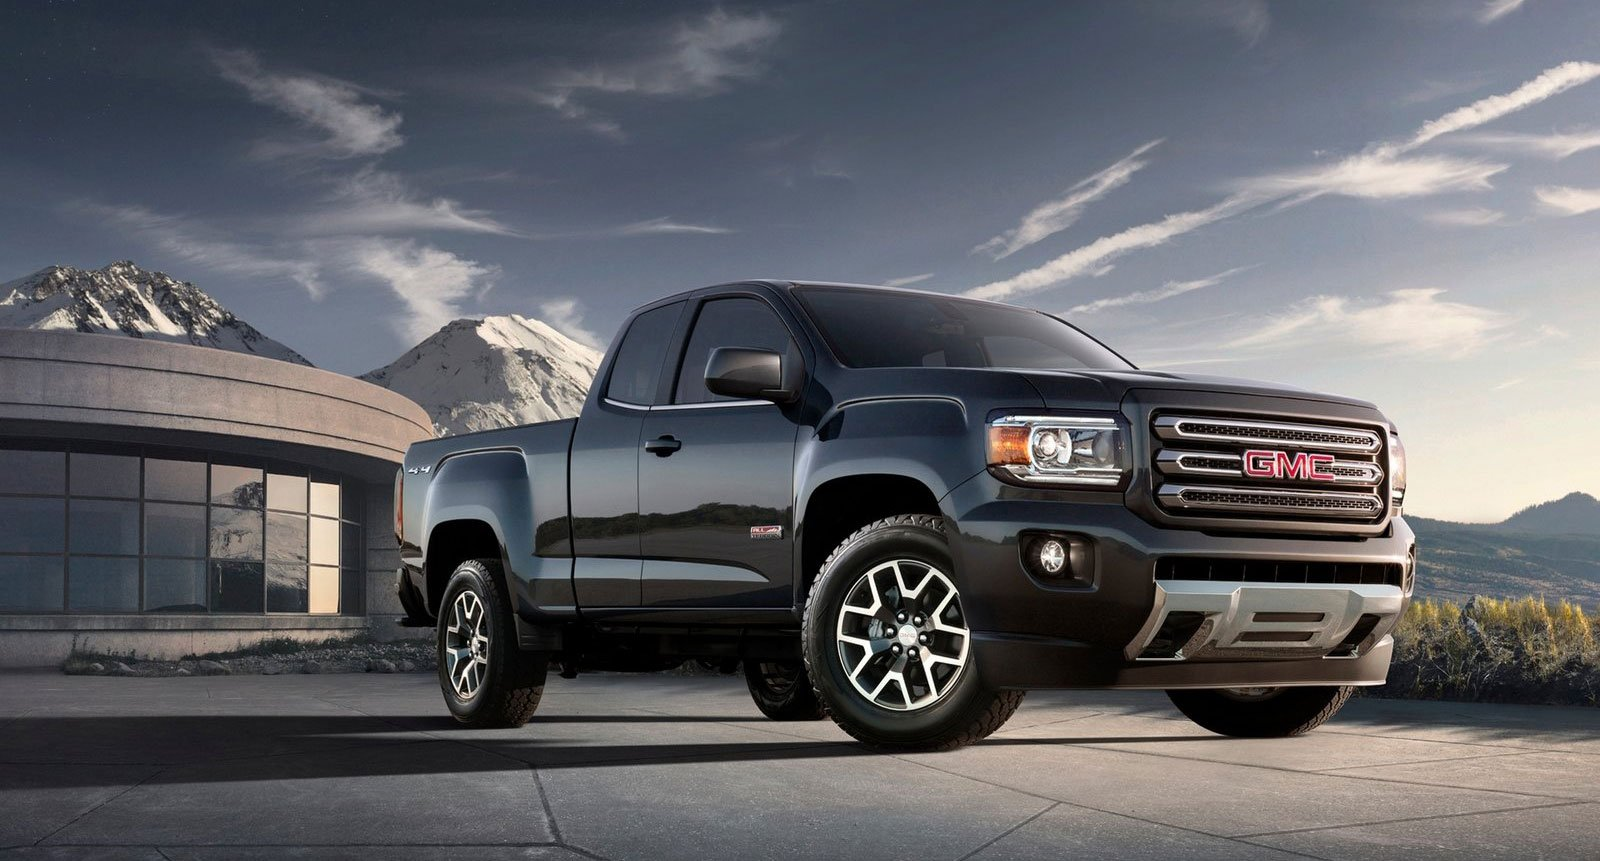 2016 Chevrolet Kodiak Truck Wallpapers 1600x861